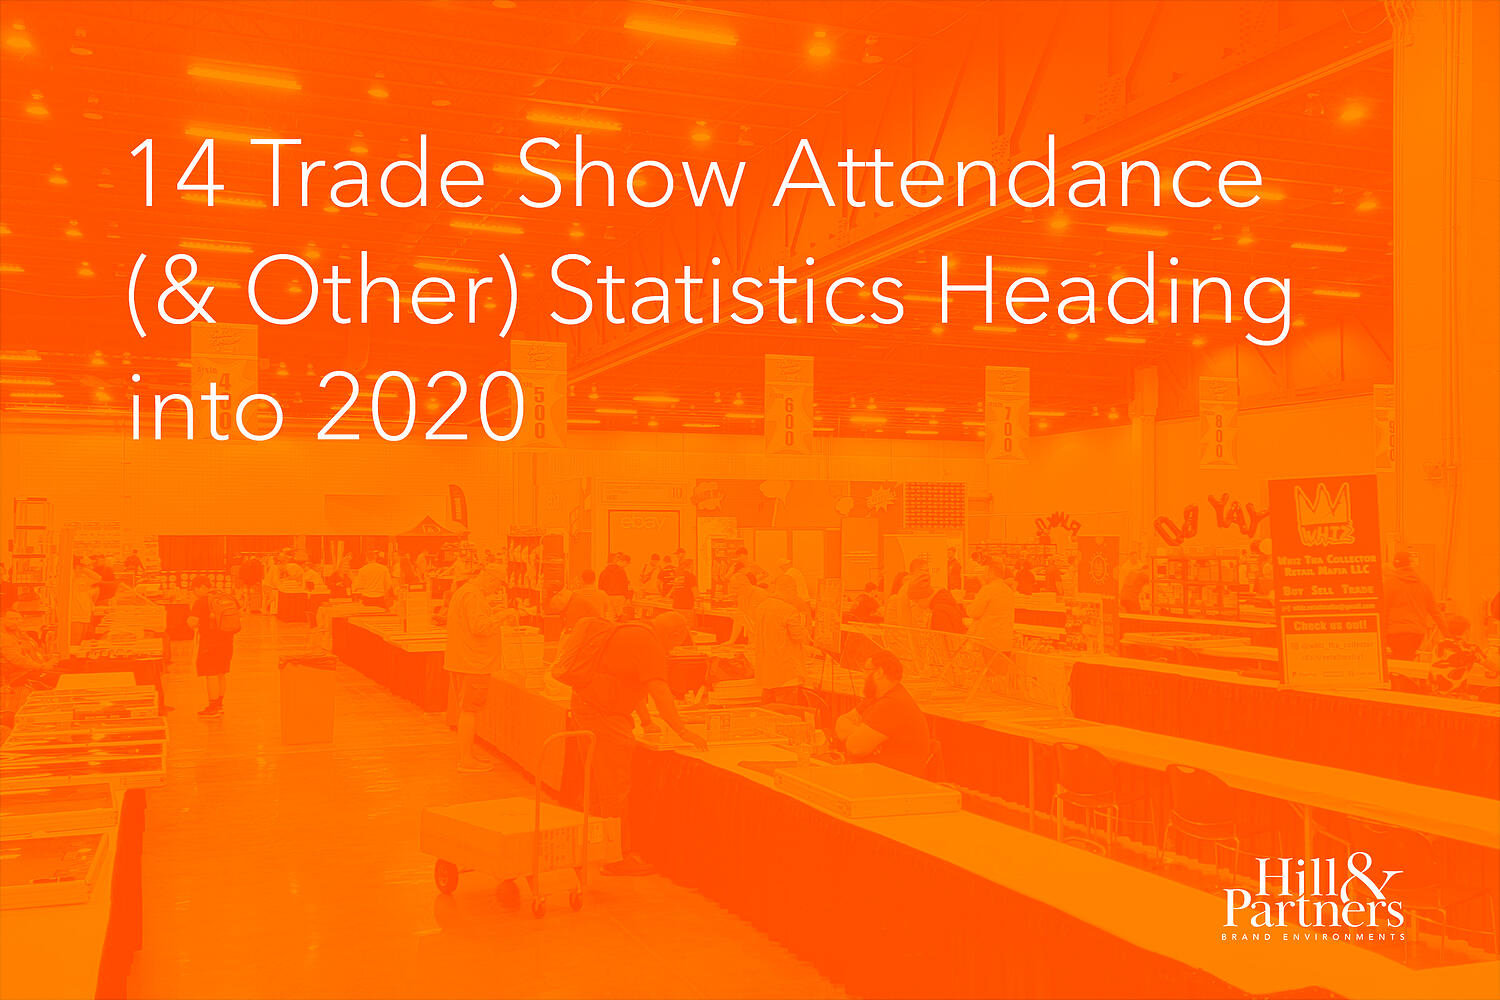 14 Trade Show Attendance (& Other) Statistics Heading Into 2020